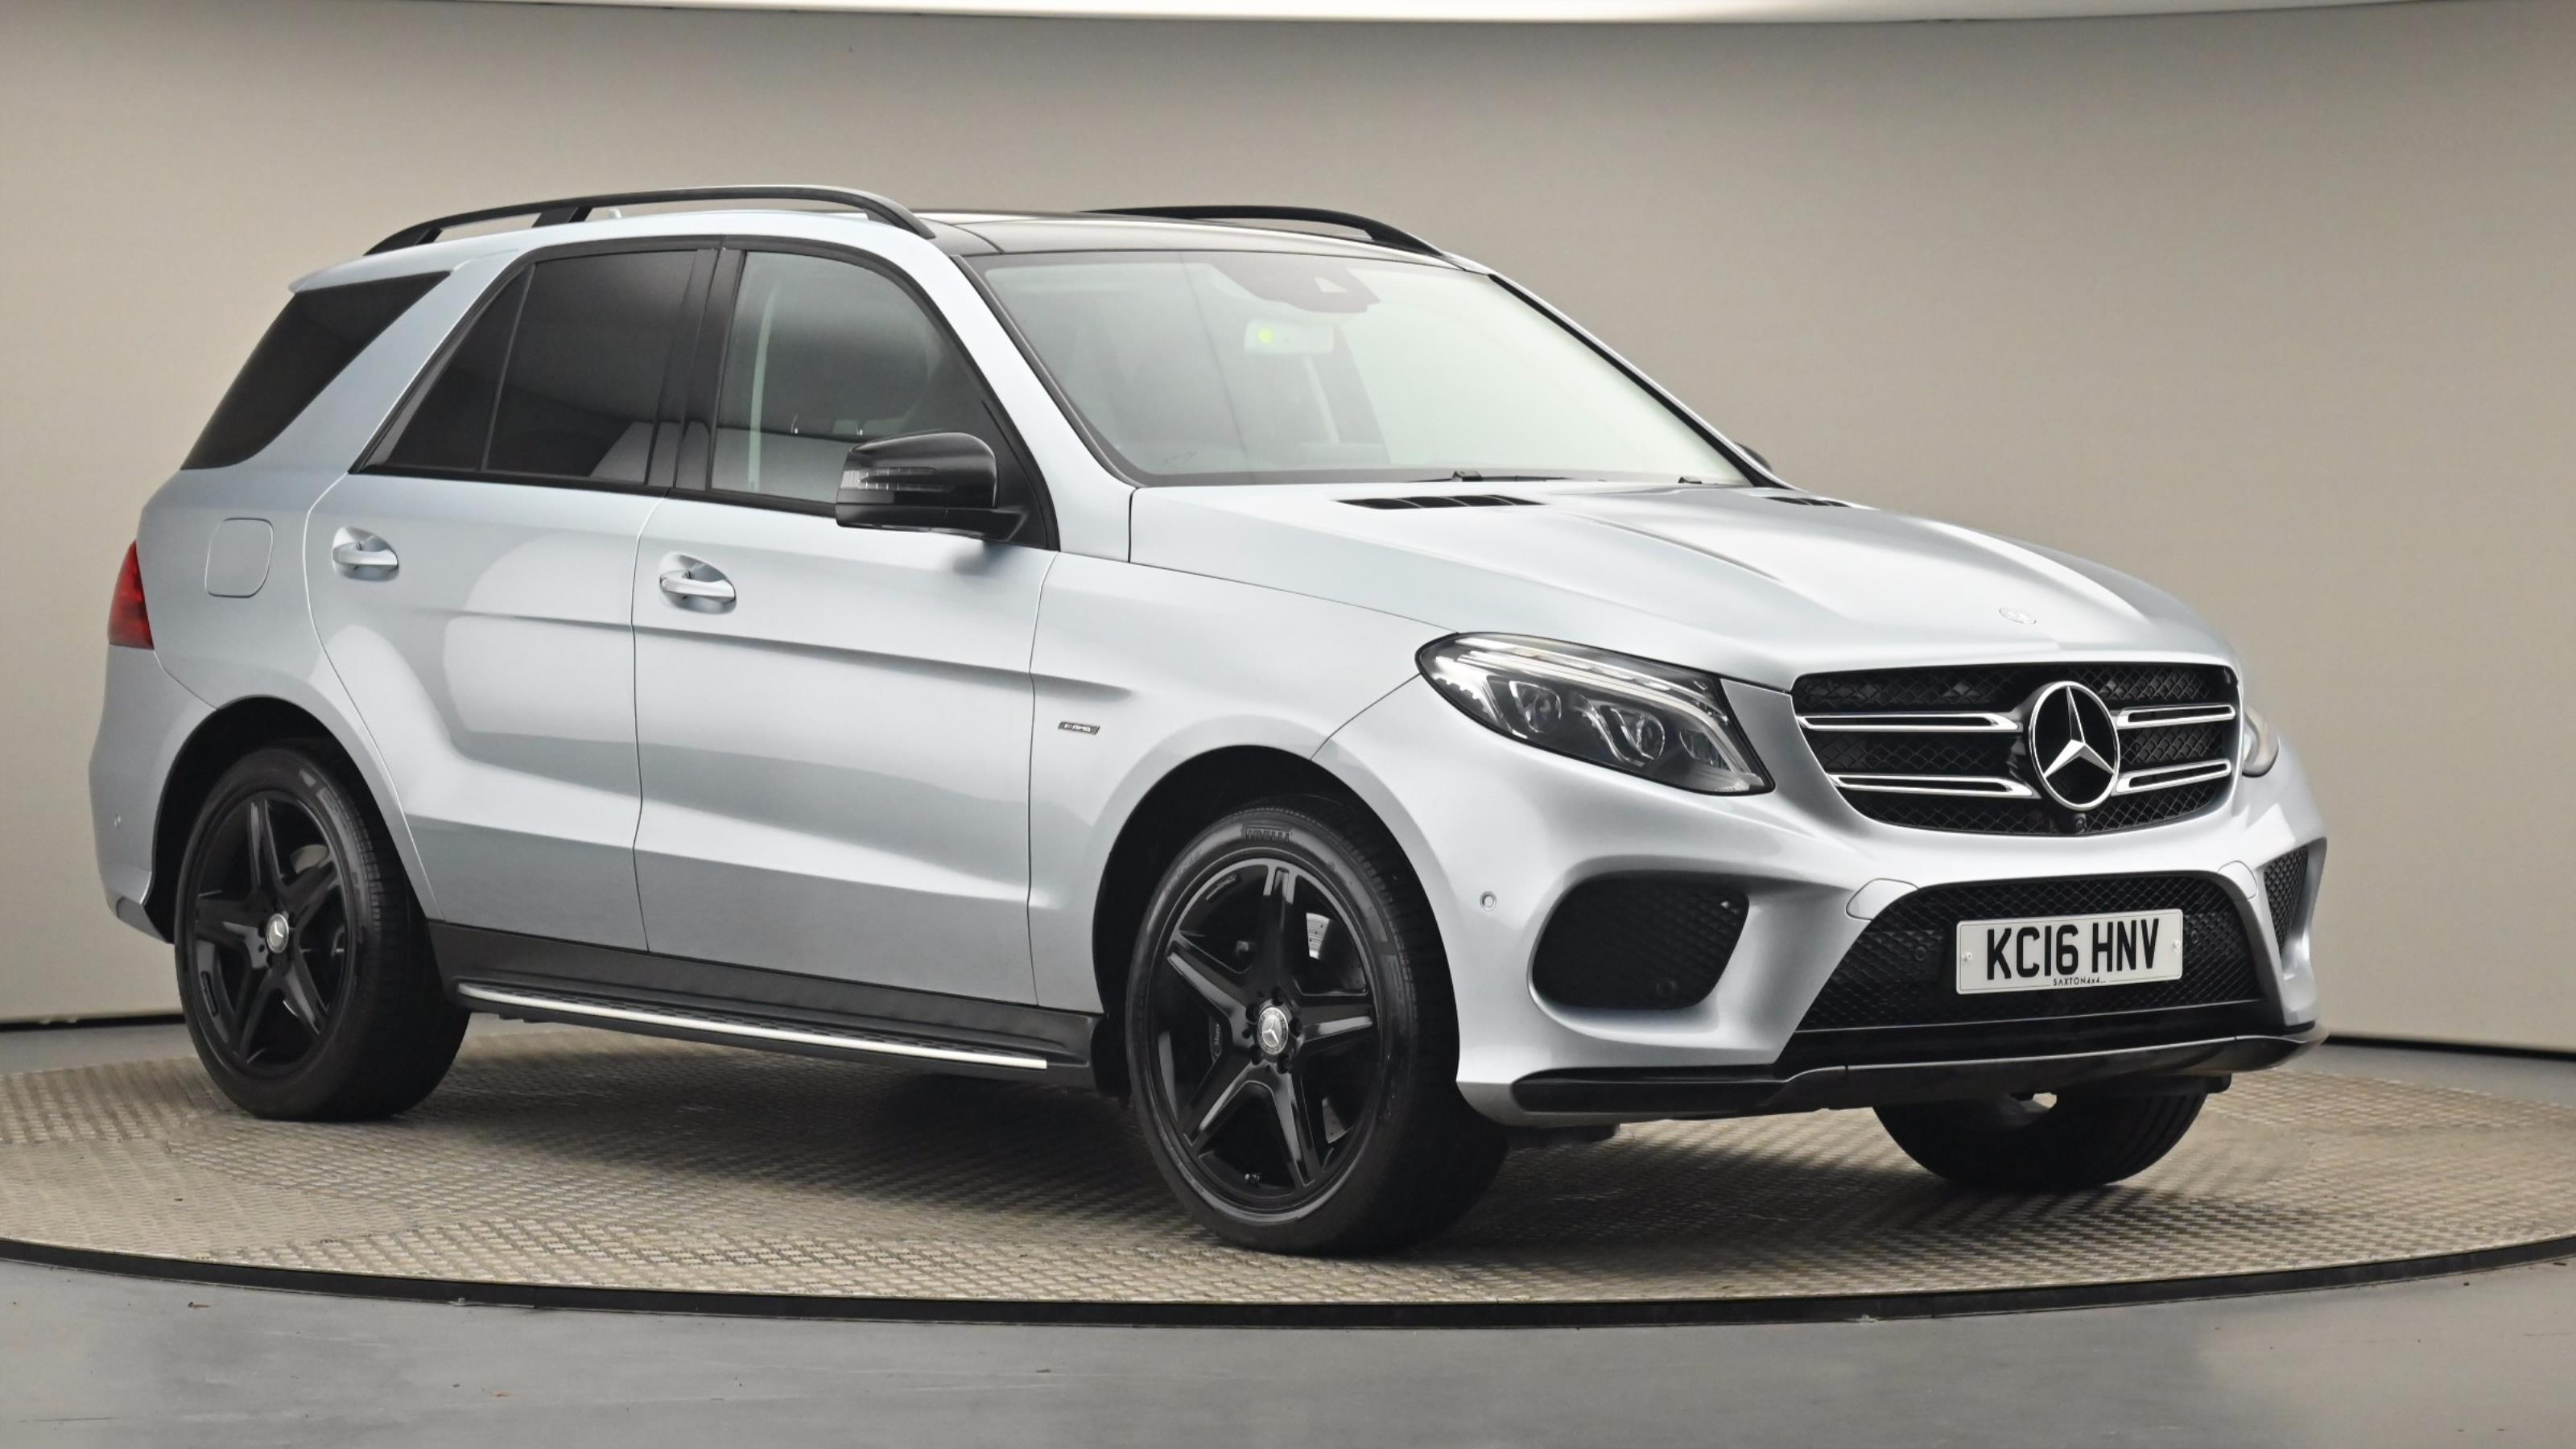 Used 2016 Mercedes-Benz GLE COUPE GLE 450 AMG 4Matic Premium 5dr 9G-Tronic SILVER at Saxton4x4